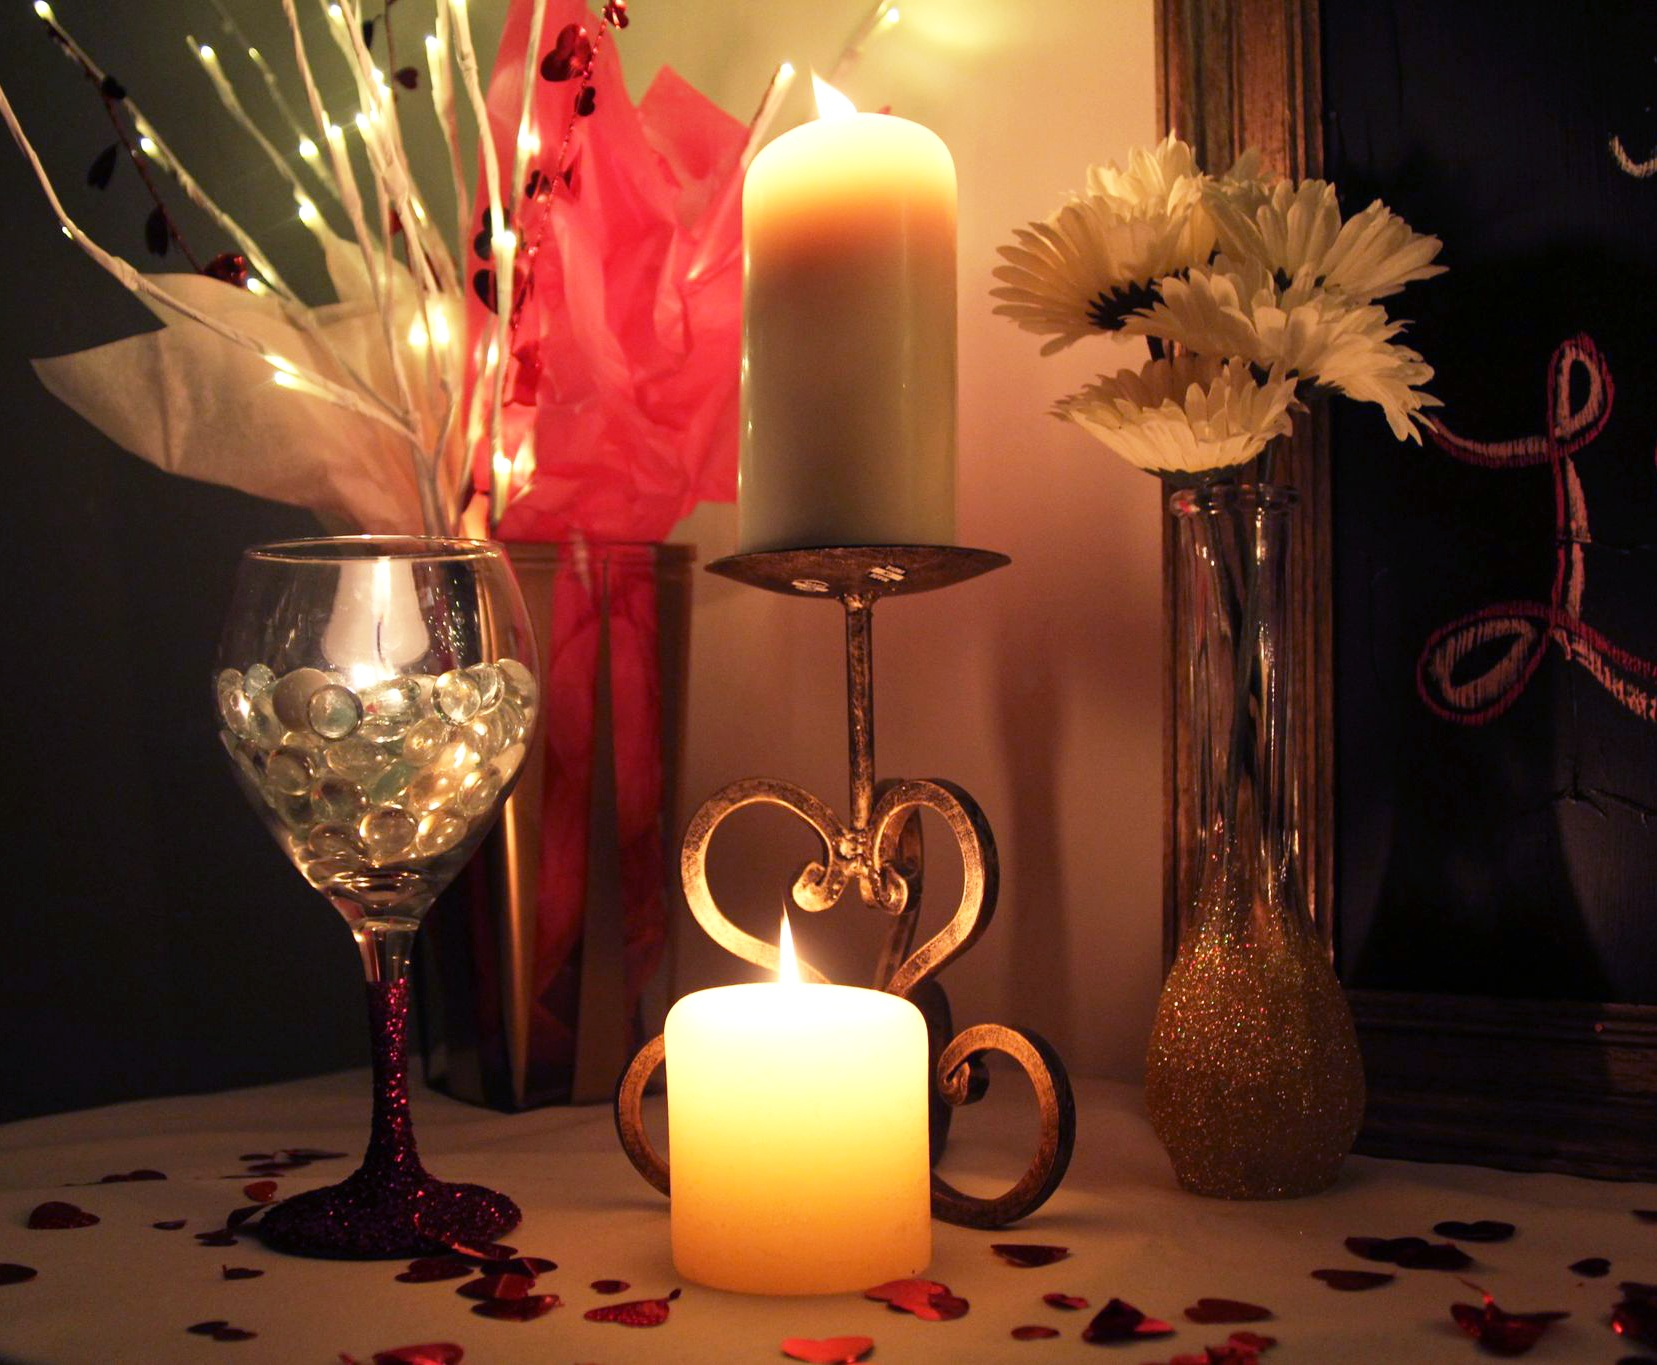 vday 4candle.jpg